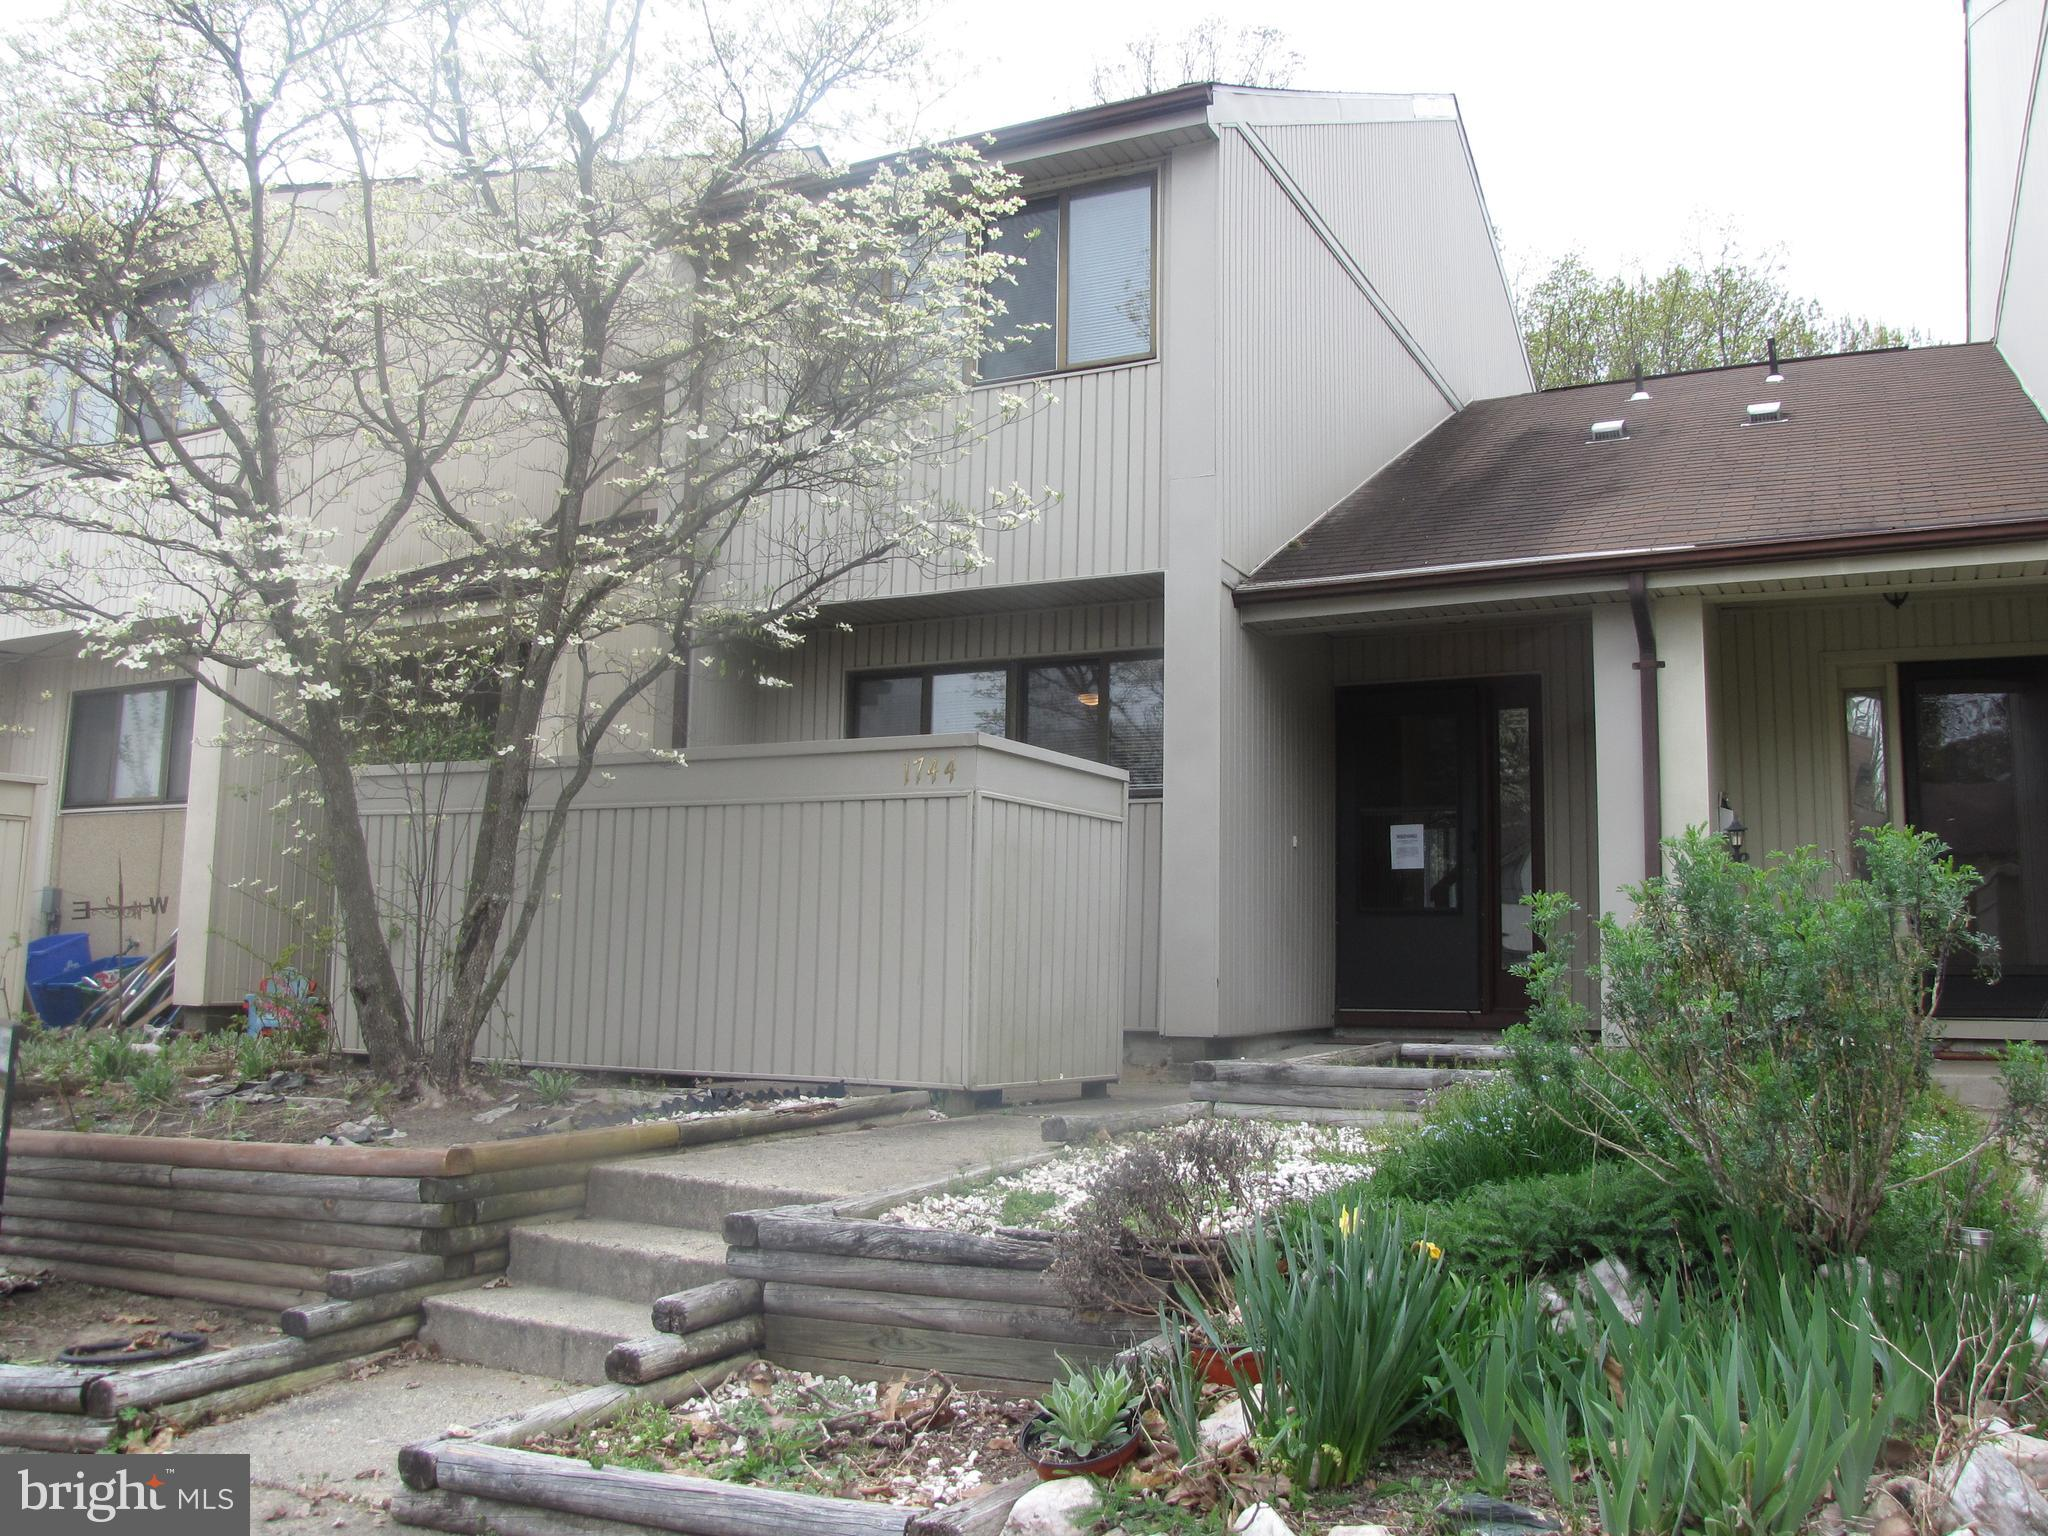 FULLY AVAILABLE 4-24-19.. HURRY! Exceptional Townhome in Rippon Landing. To submit an offer on the property for consideration, offers now going to propoffers in Pyramid. all cash of funds for closing. Fay Servicing is managing the sale of the property in this listing. Fay Servicing requires all prospective buyers seeking financing to prequalify with Fay Mortgage, its lending division, prior to submitting an offer on the property to establish that they will be able to obtain required financing. All non-cash offers should be submitted with a free prequalification letter from sellers preferred lender Fay Mortgage by contacting the loan officer Bruce Stewart who need a business purpose mortgage for bridge financing or to purchase a rental property may contact Constructive Loans LLC, an affiliate of Fay Servicing, Buyers are not required to obtain a loan from Constructive Loans, LLC to buy the property